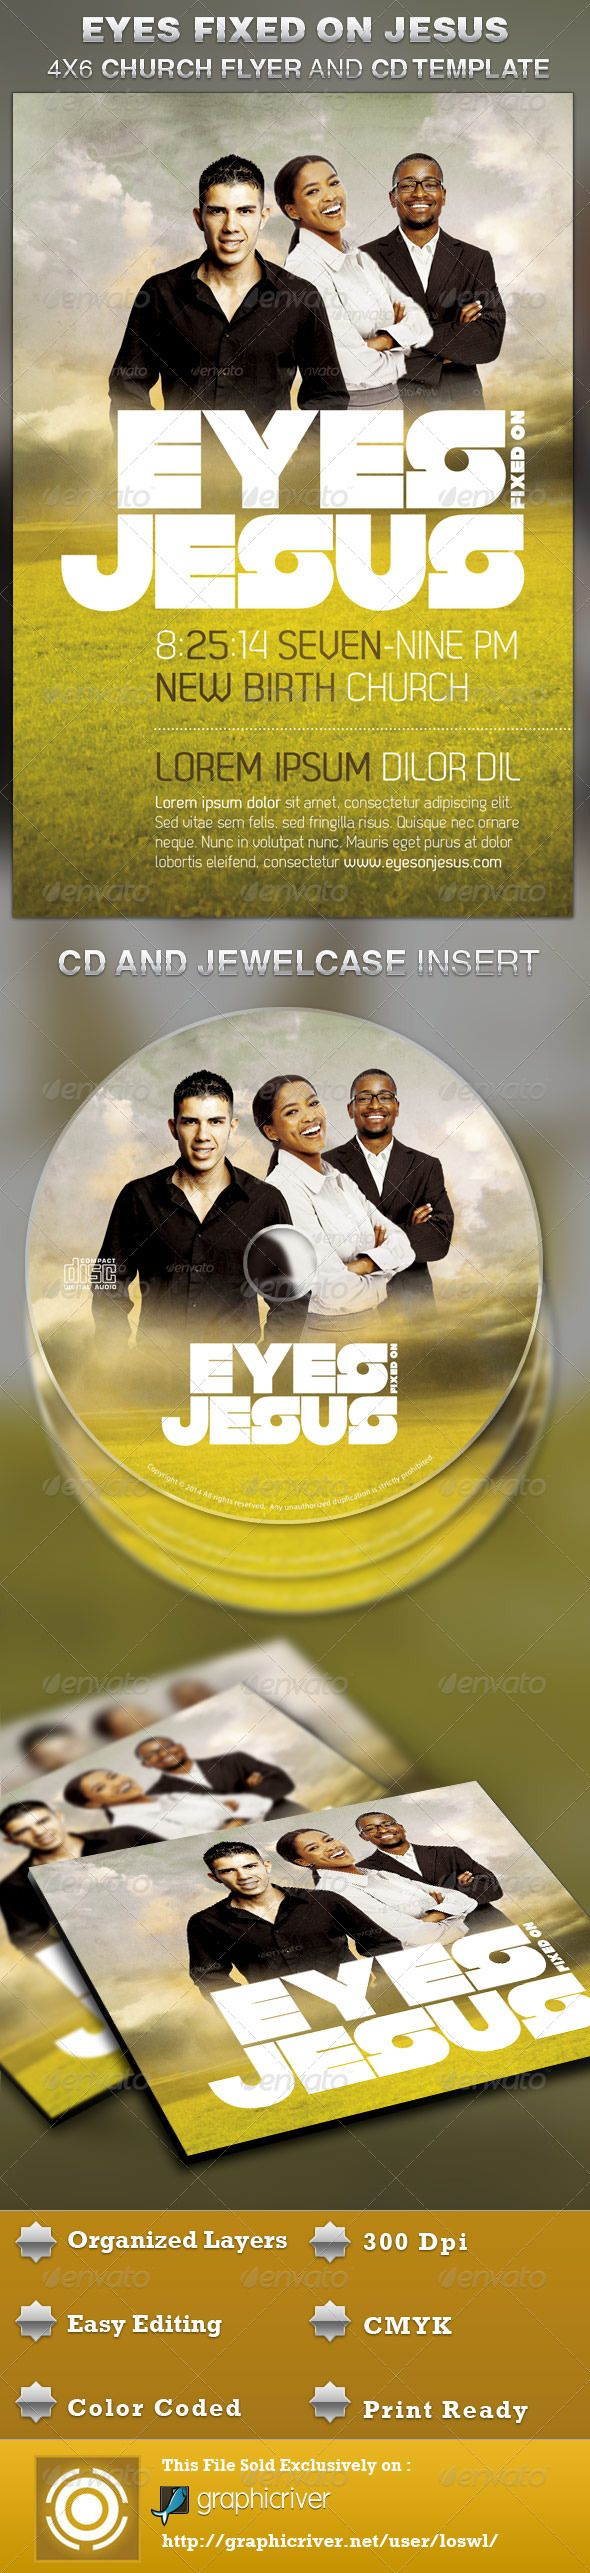 Eyes Fixed on Jesus Church Flyer and CD Template — Photoshop PSD #bulletin cover #concert flyer • Available here → https://graphicriver.net/item/eyes-fixed-on-jesus-church-flyer-and-cd-template/4754052?ref=pxcr